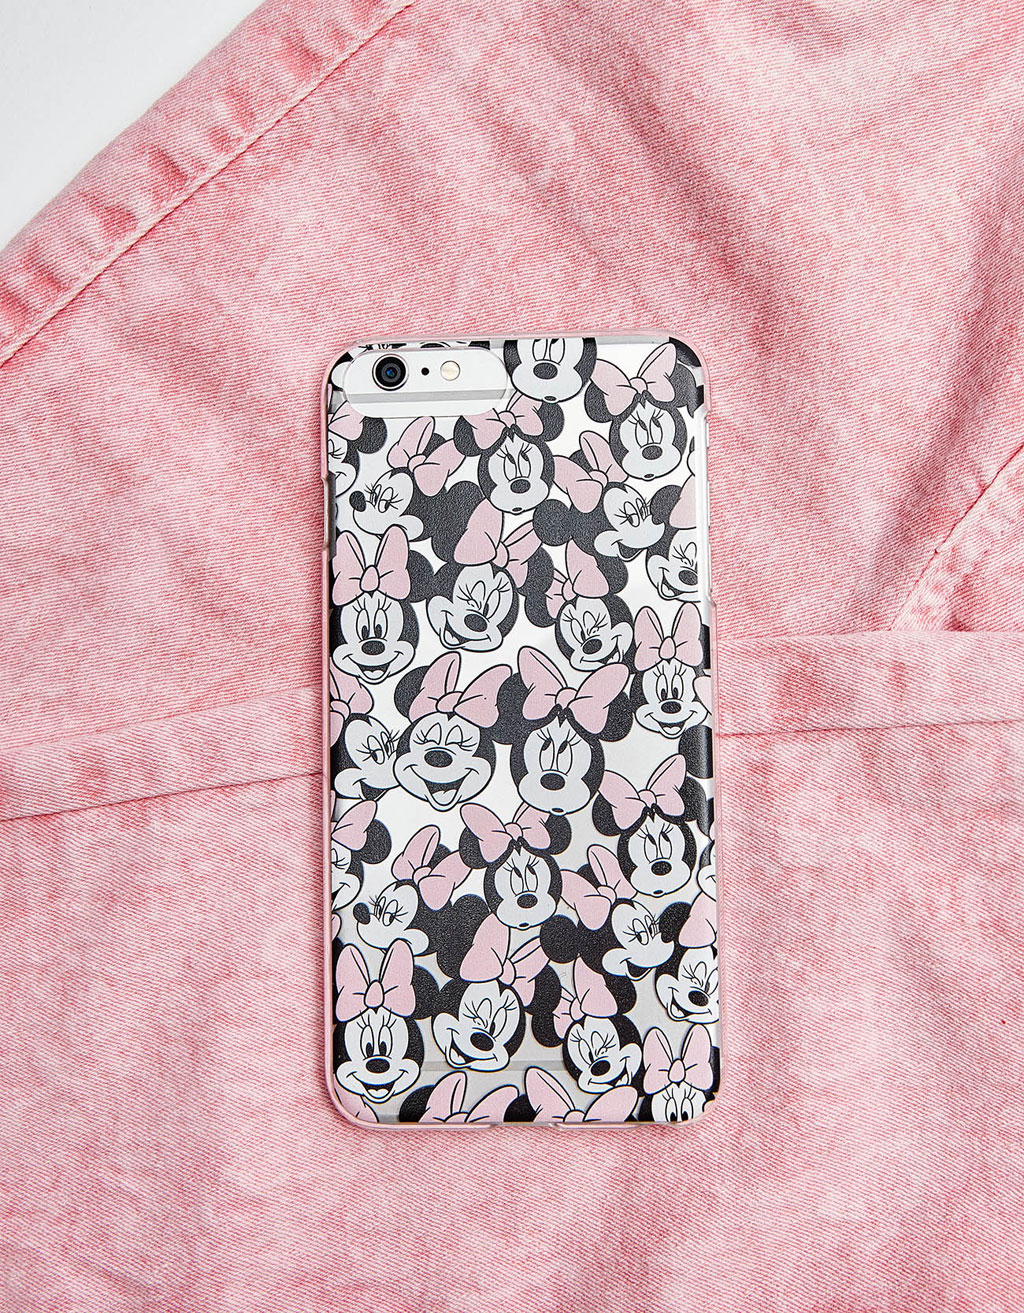 Carcasă fețele Minnie iPhone 6 Plus/7 Plus